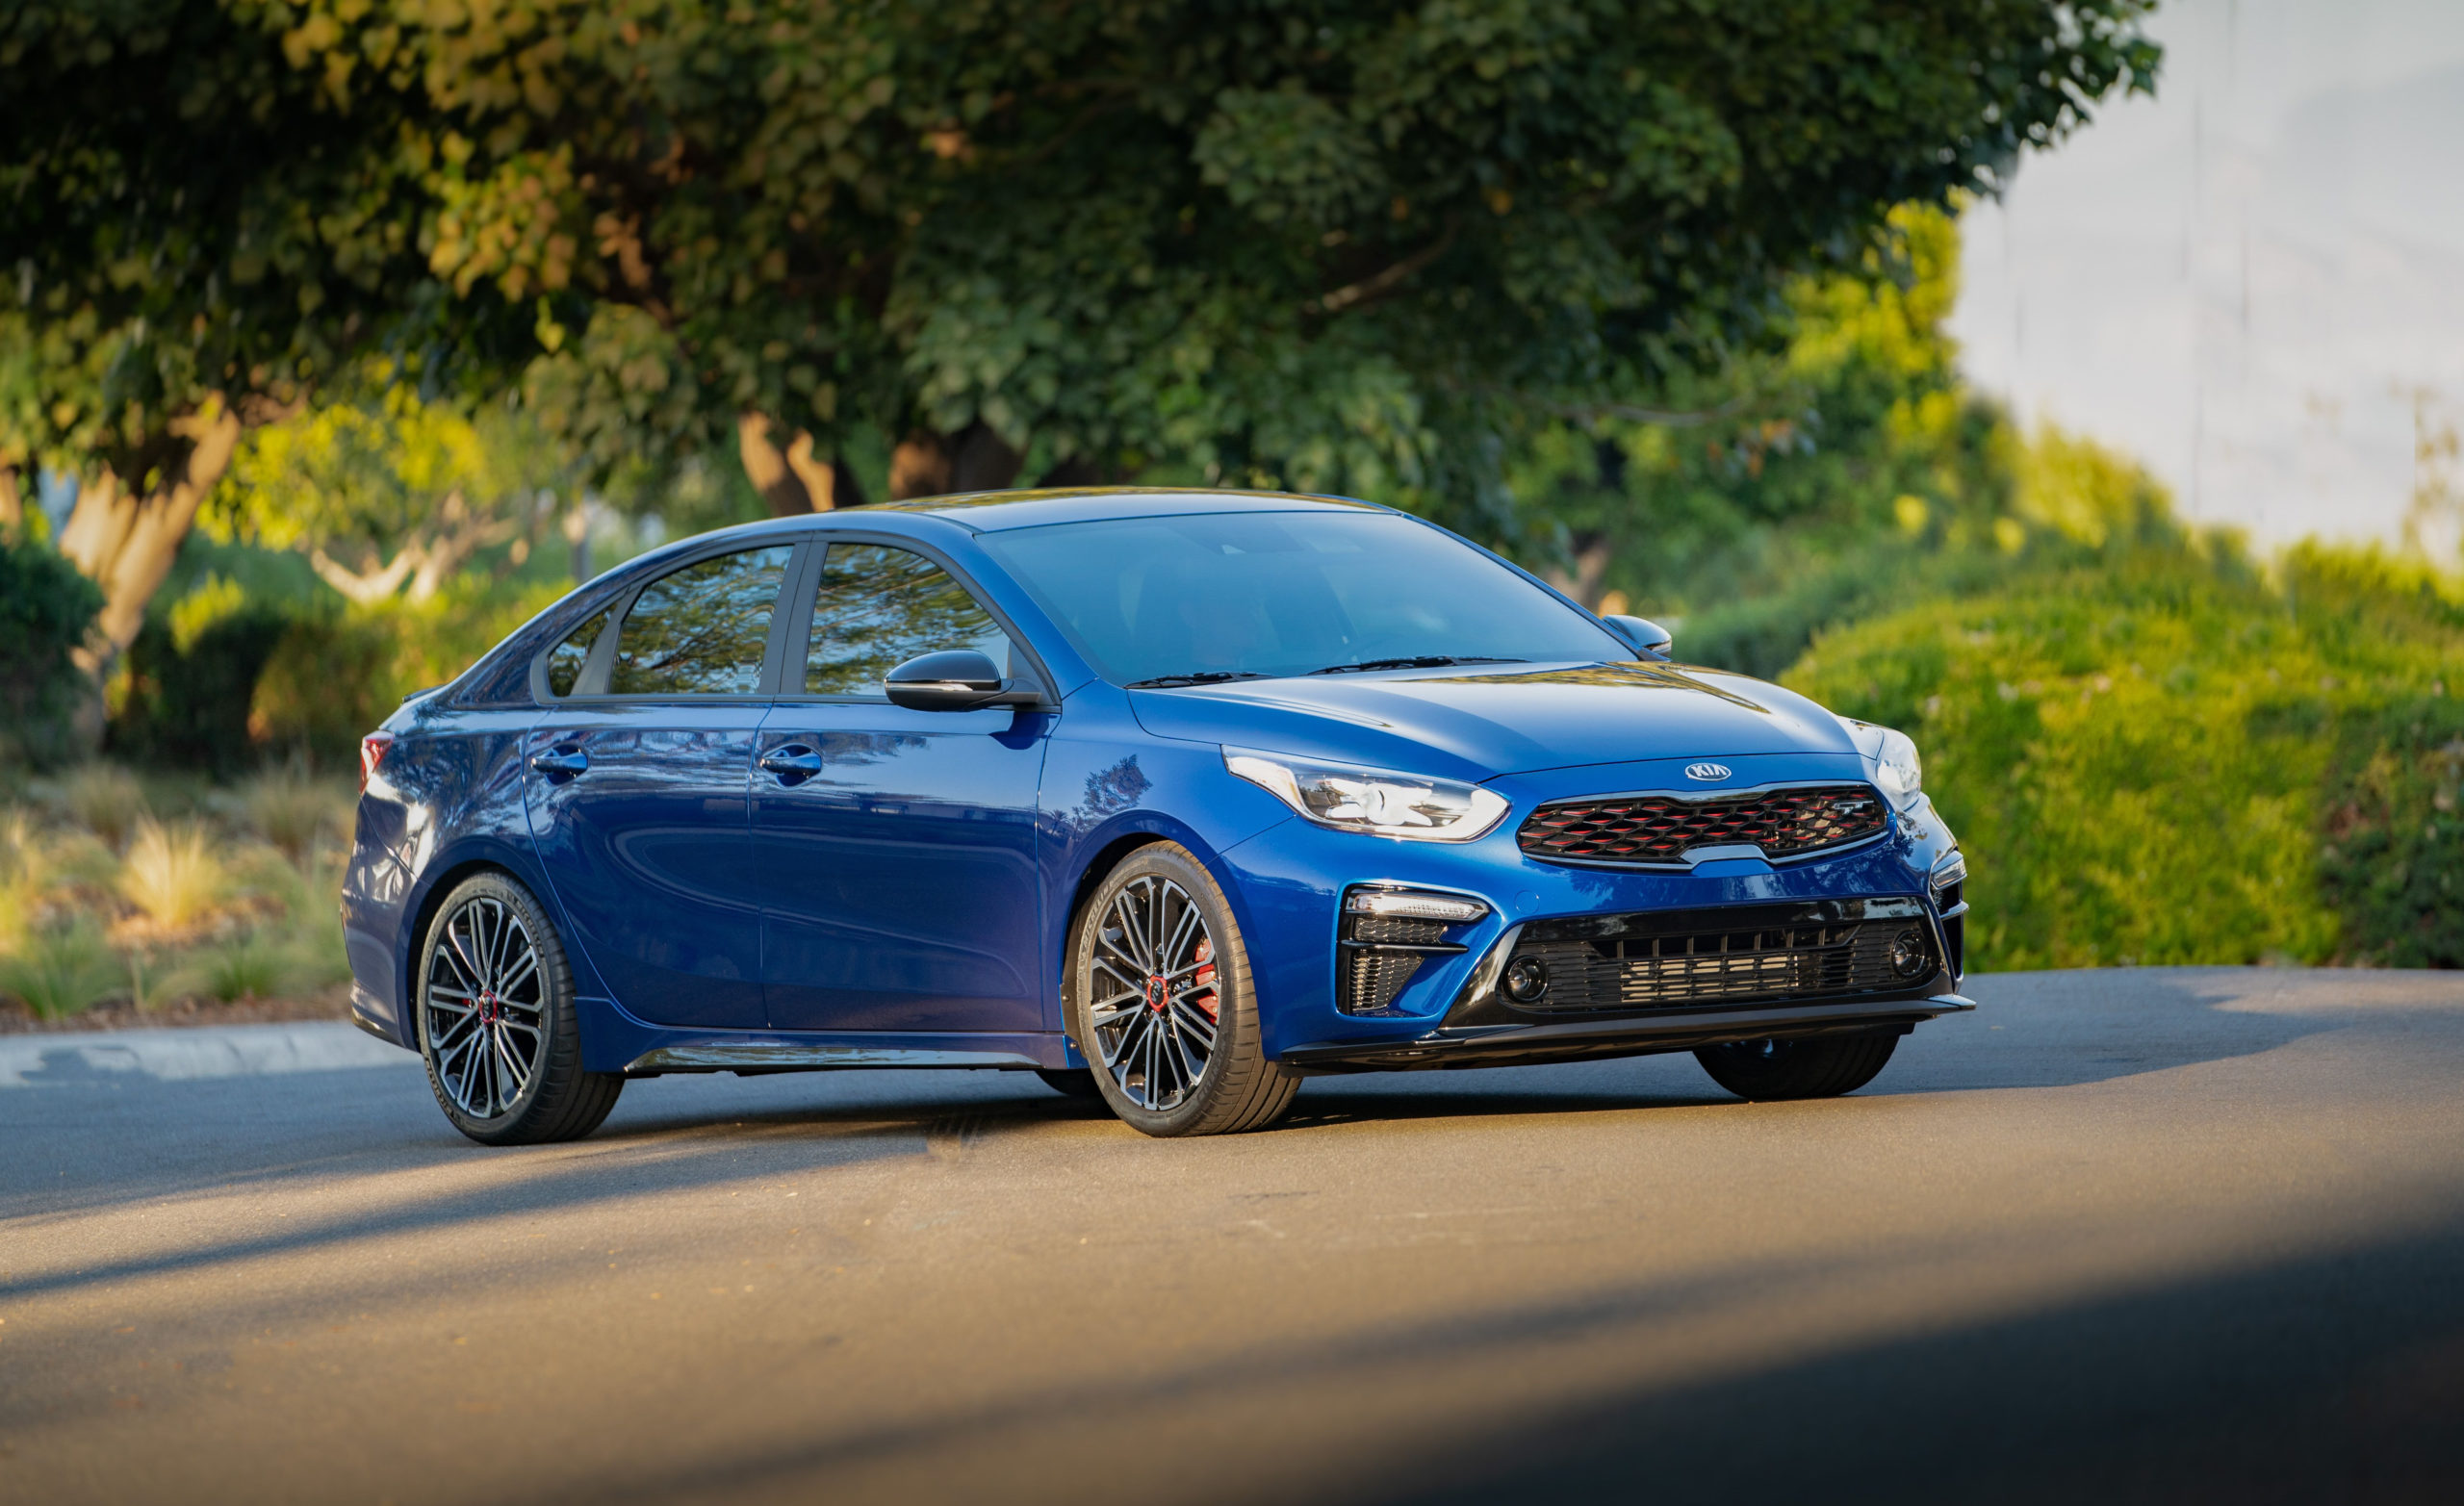 2020 Kia Forte Gt Gets 201 Turbocharged Horsepower For Under - 2022 Kia Forte Silver Performance, Release Date